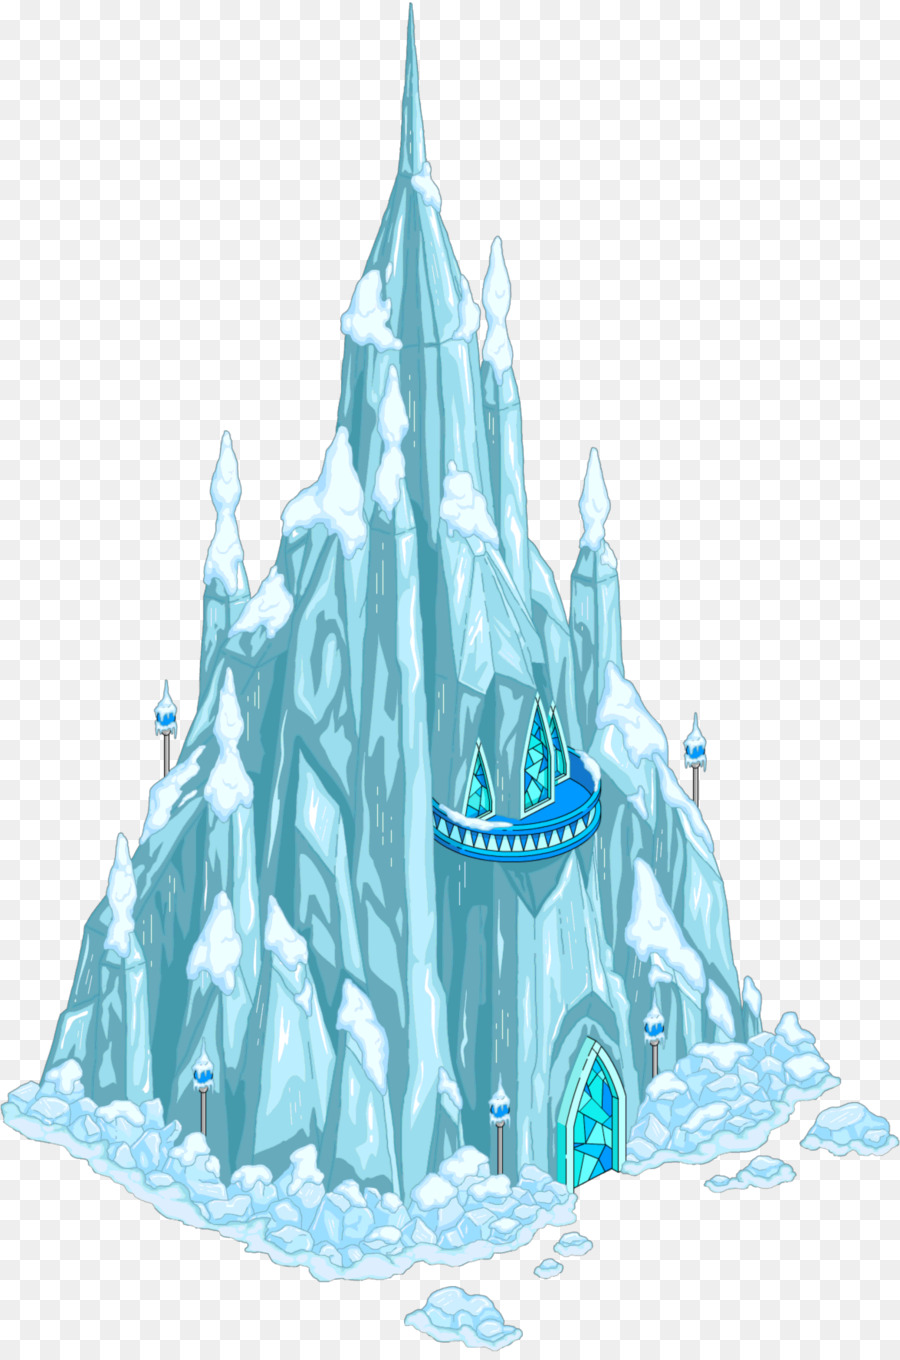 Ice sculpture clipart graphic transparent download Frozen Drawing png download - 1174*1764 - Free Transparent ... graphic transparent download